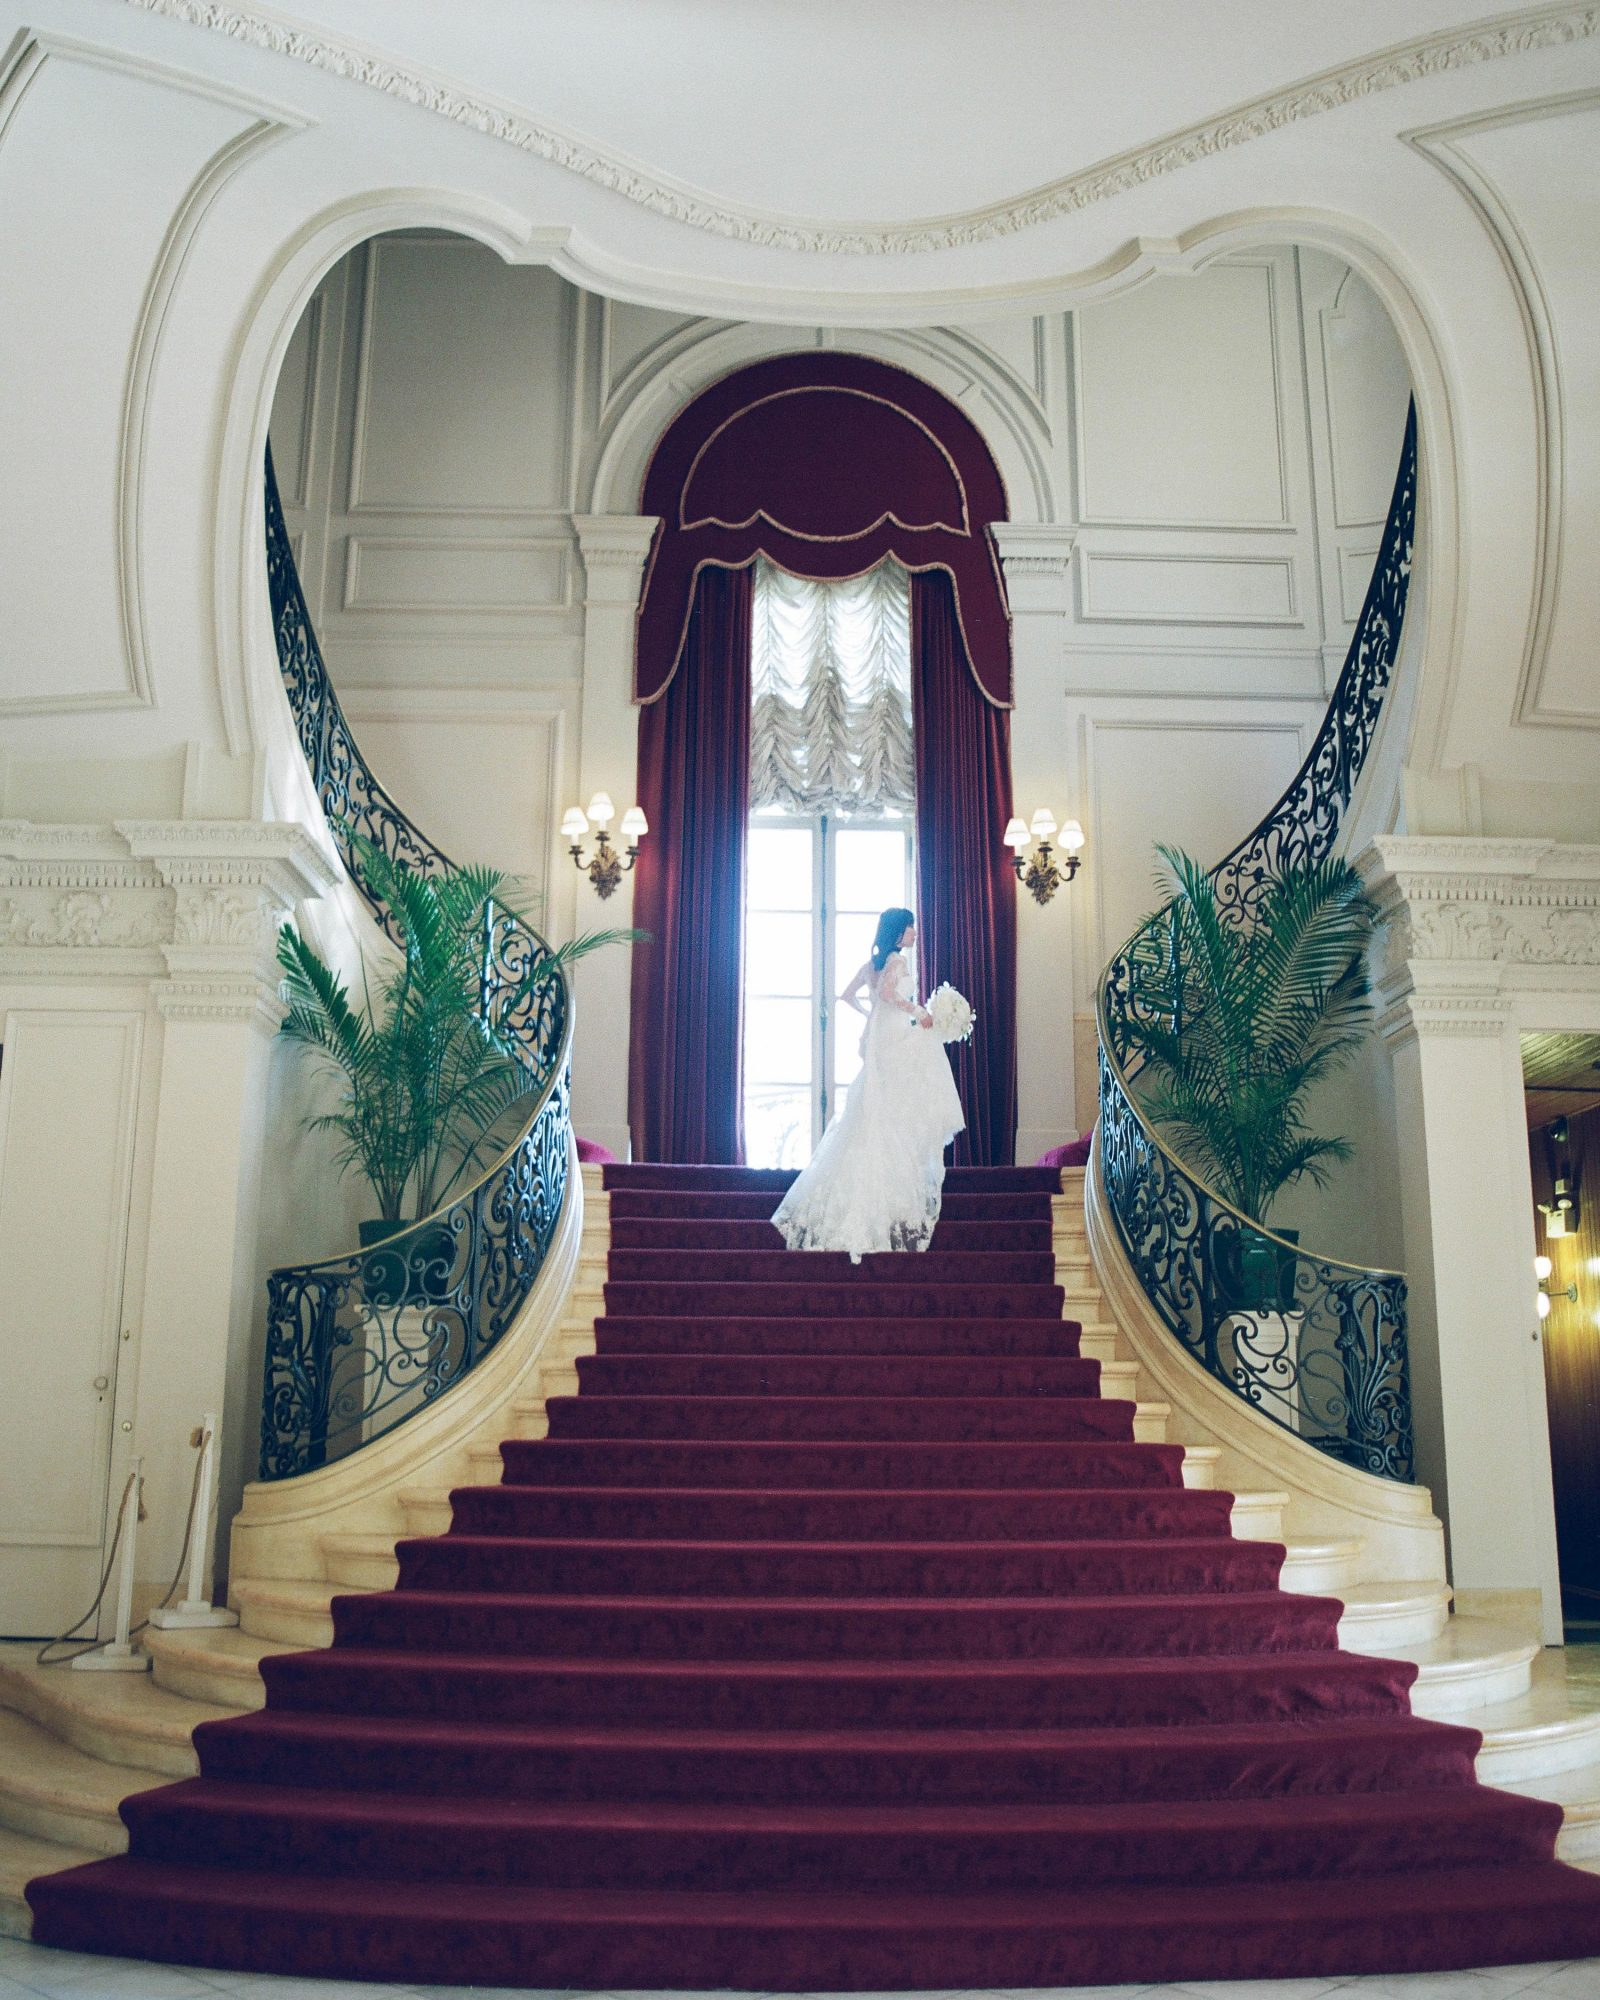 lissy-steven-wedding-newport-bride-stairs-7-elizabethmessina-s112907-0516.jpg